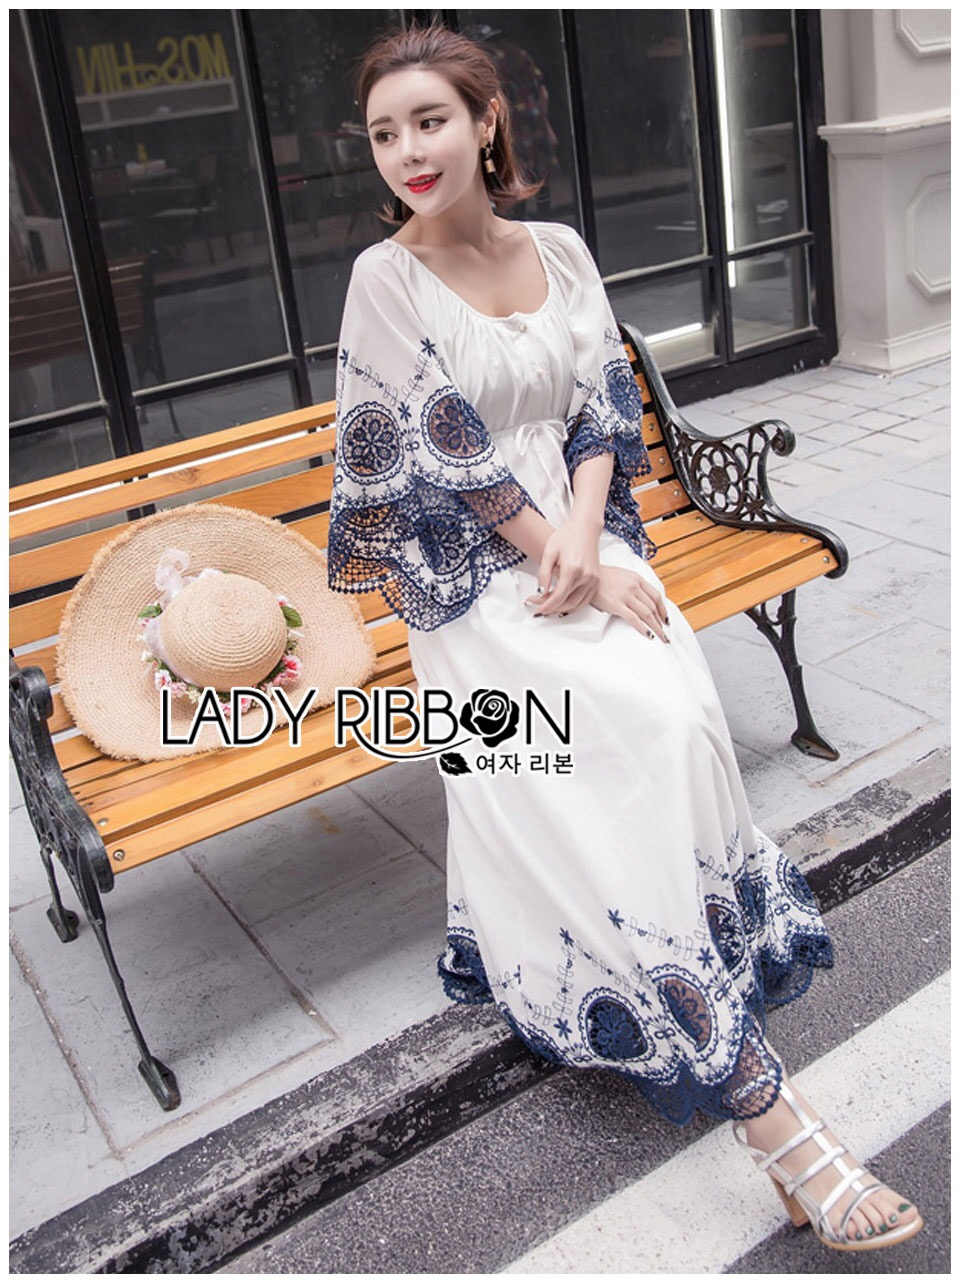 Lady Ribbon Korea Dress LR09060616 &#x1F380 Lady Ribbon's Made &#x1F380 Lady Cathy Casual Beach Chic Lace Embroidered Cotton Maxi Dress